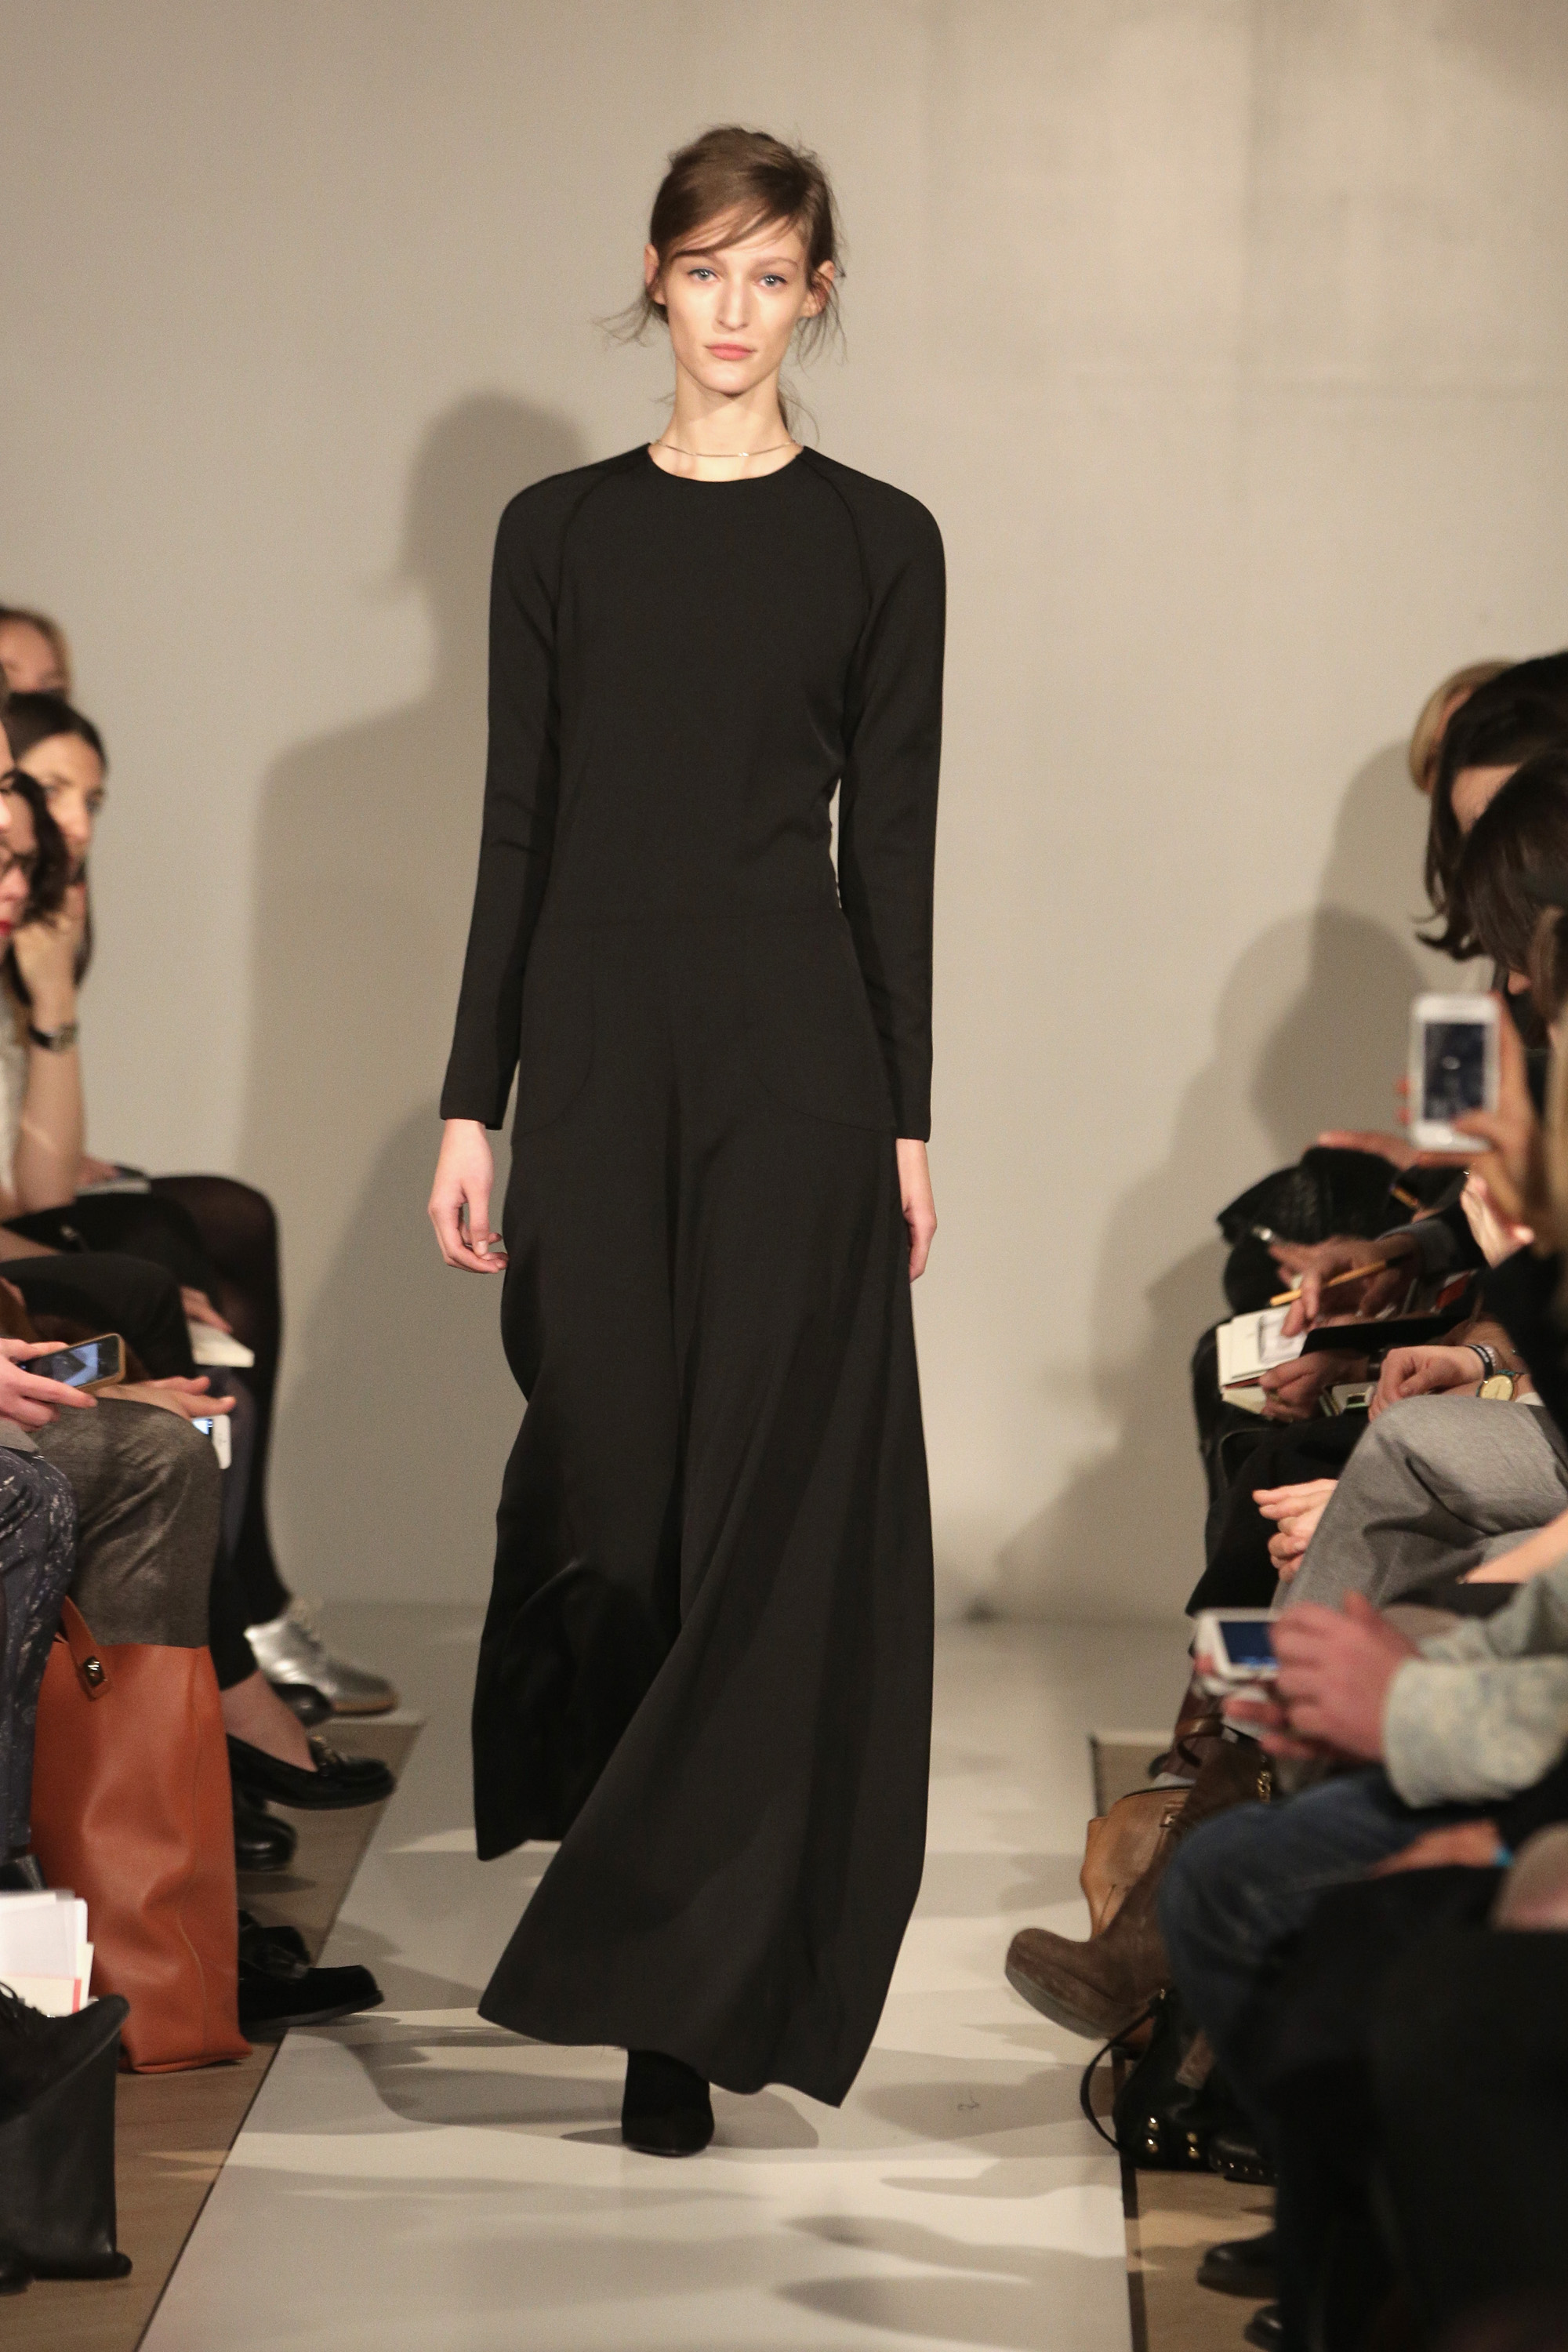 Filippa K. Show - Mercedes-Benz Fashion Week Autumn/Winter 2014/15